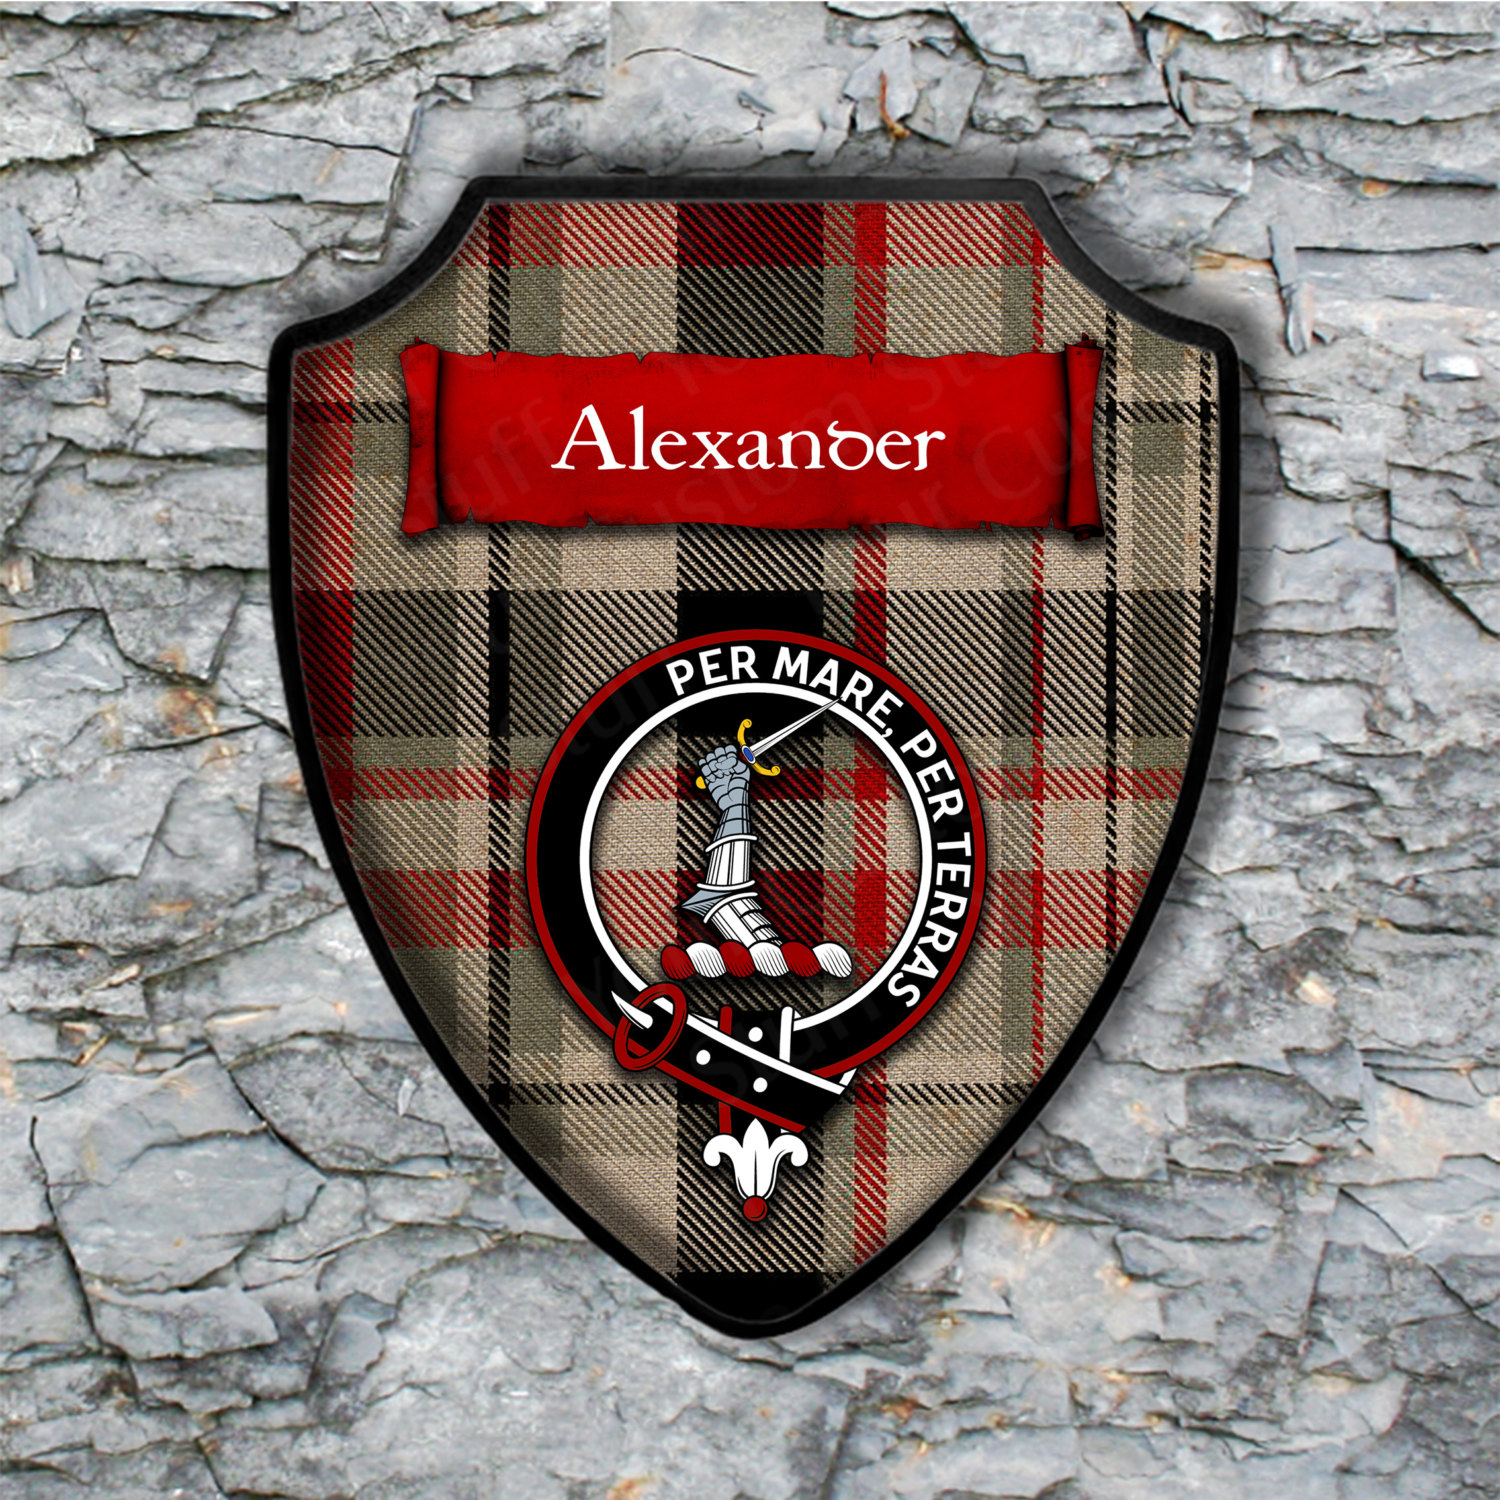 Alexander Shield Plaque with Scottish Clan Coat of Arms Badge on Clan Plaid Tartan Background Wall Art